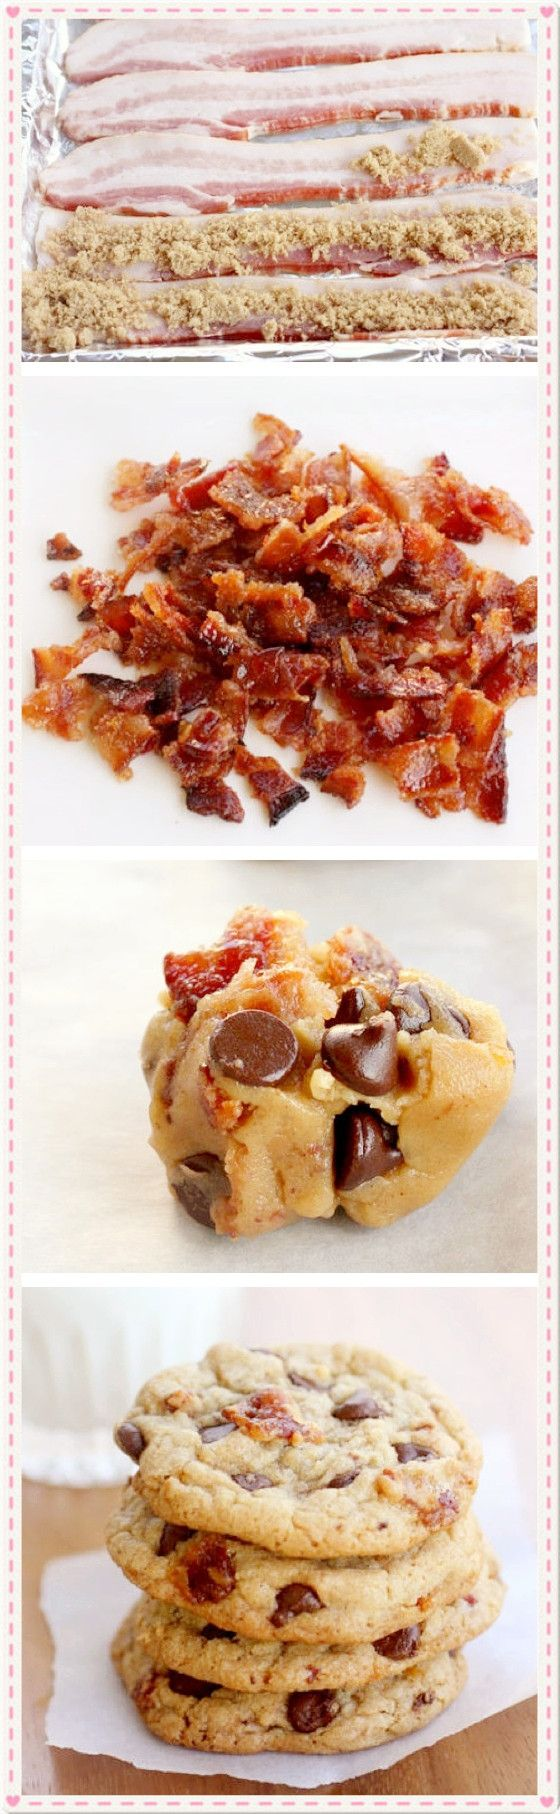 Candied Bacon Chocolate Chip Cookies...heart attack waiting to happen. But I'm curious if they taste good.